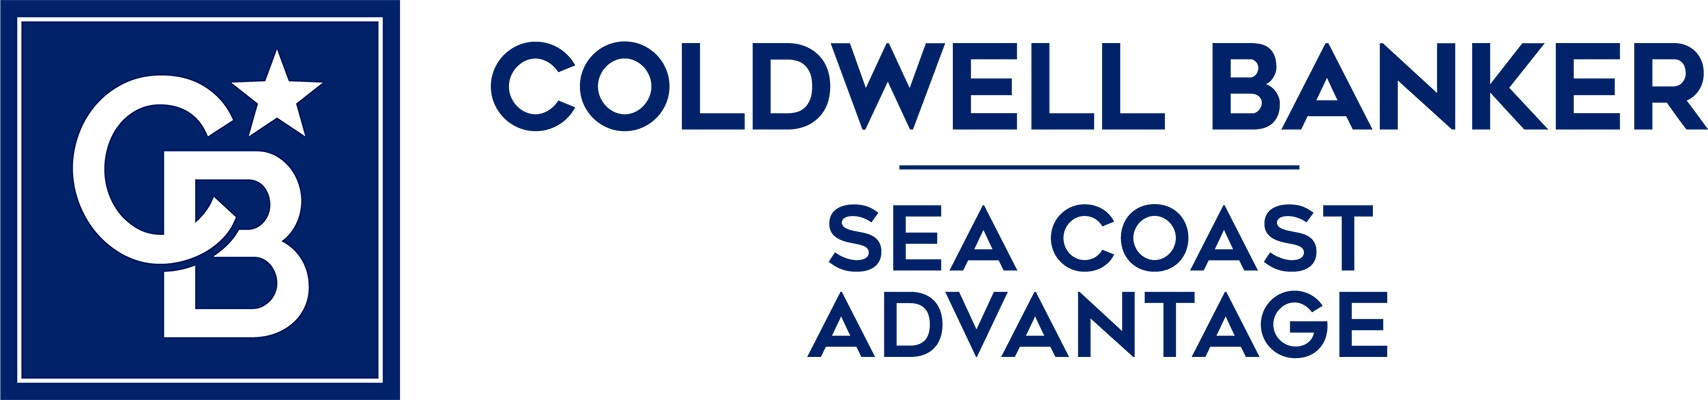 Ted Smith - Coldwell Banker Sea Coast Advantage Realty Logo